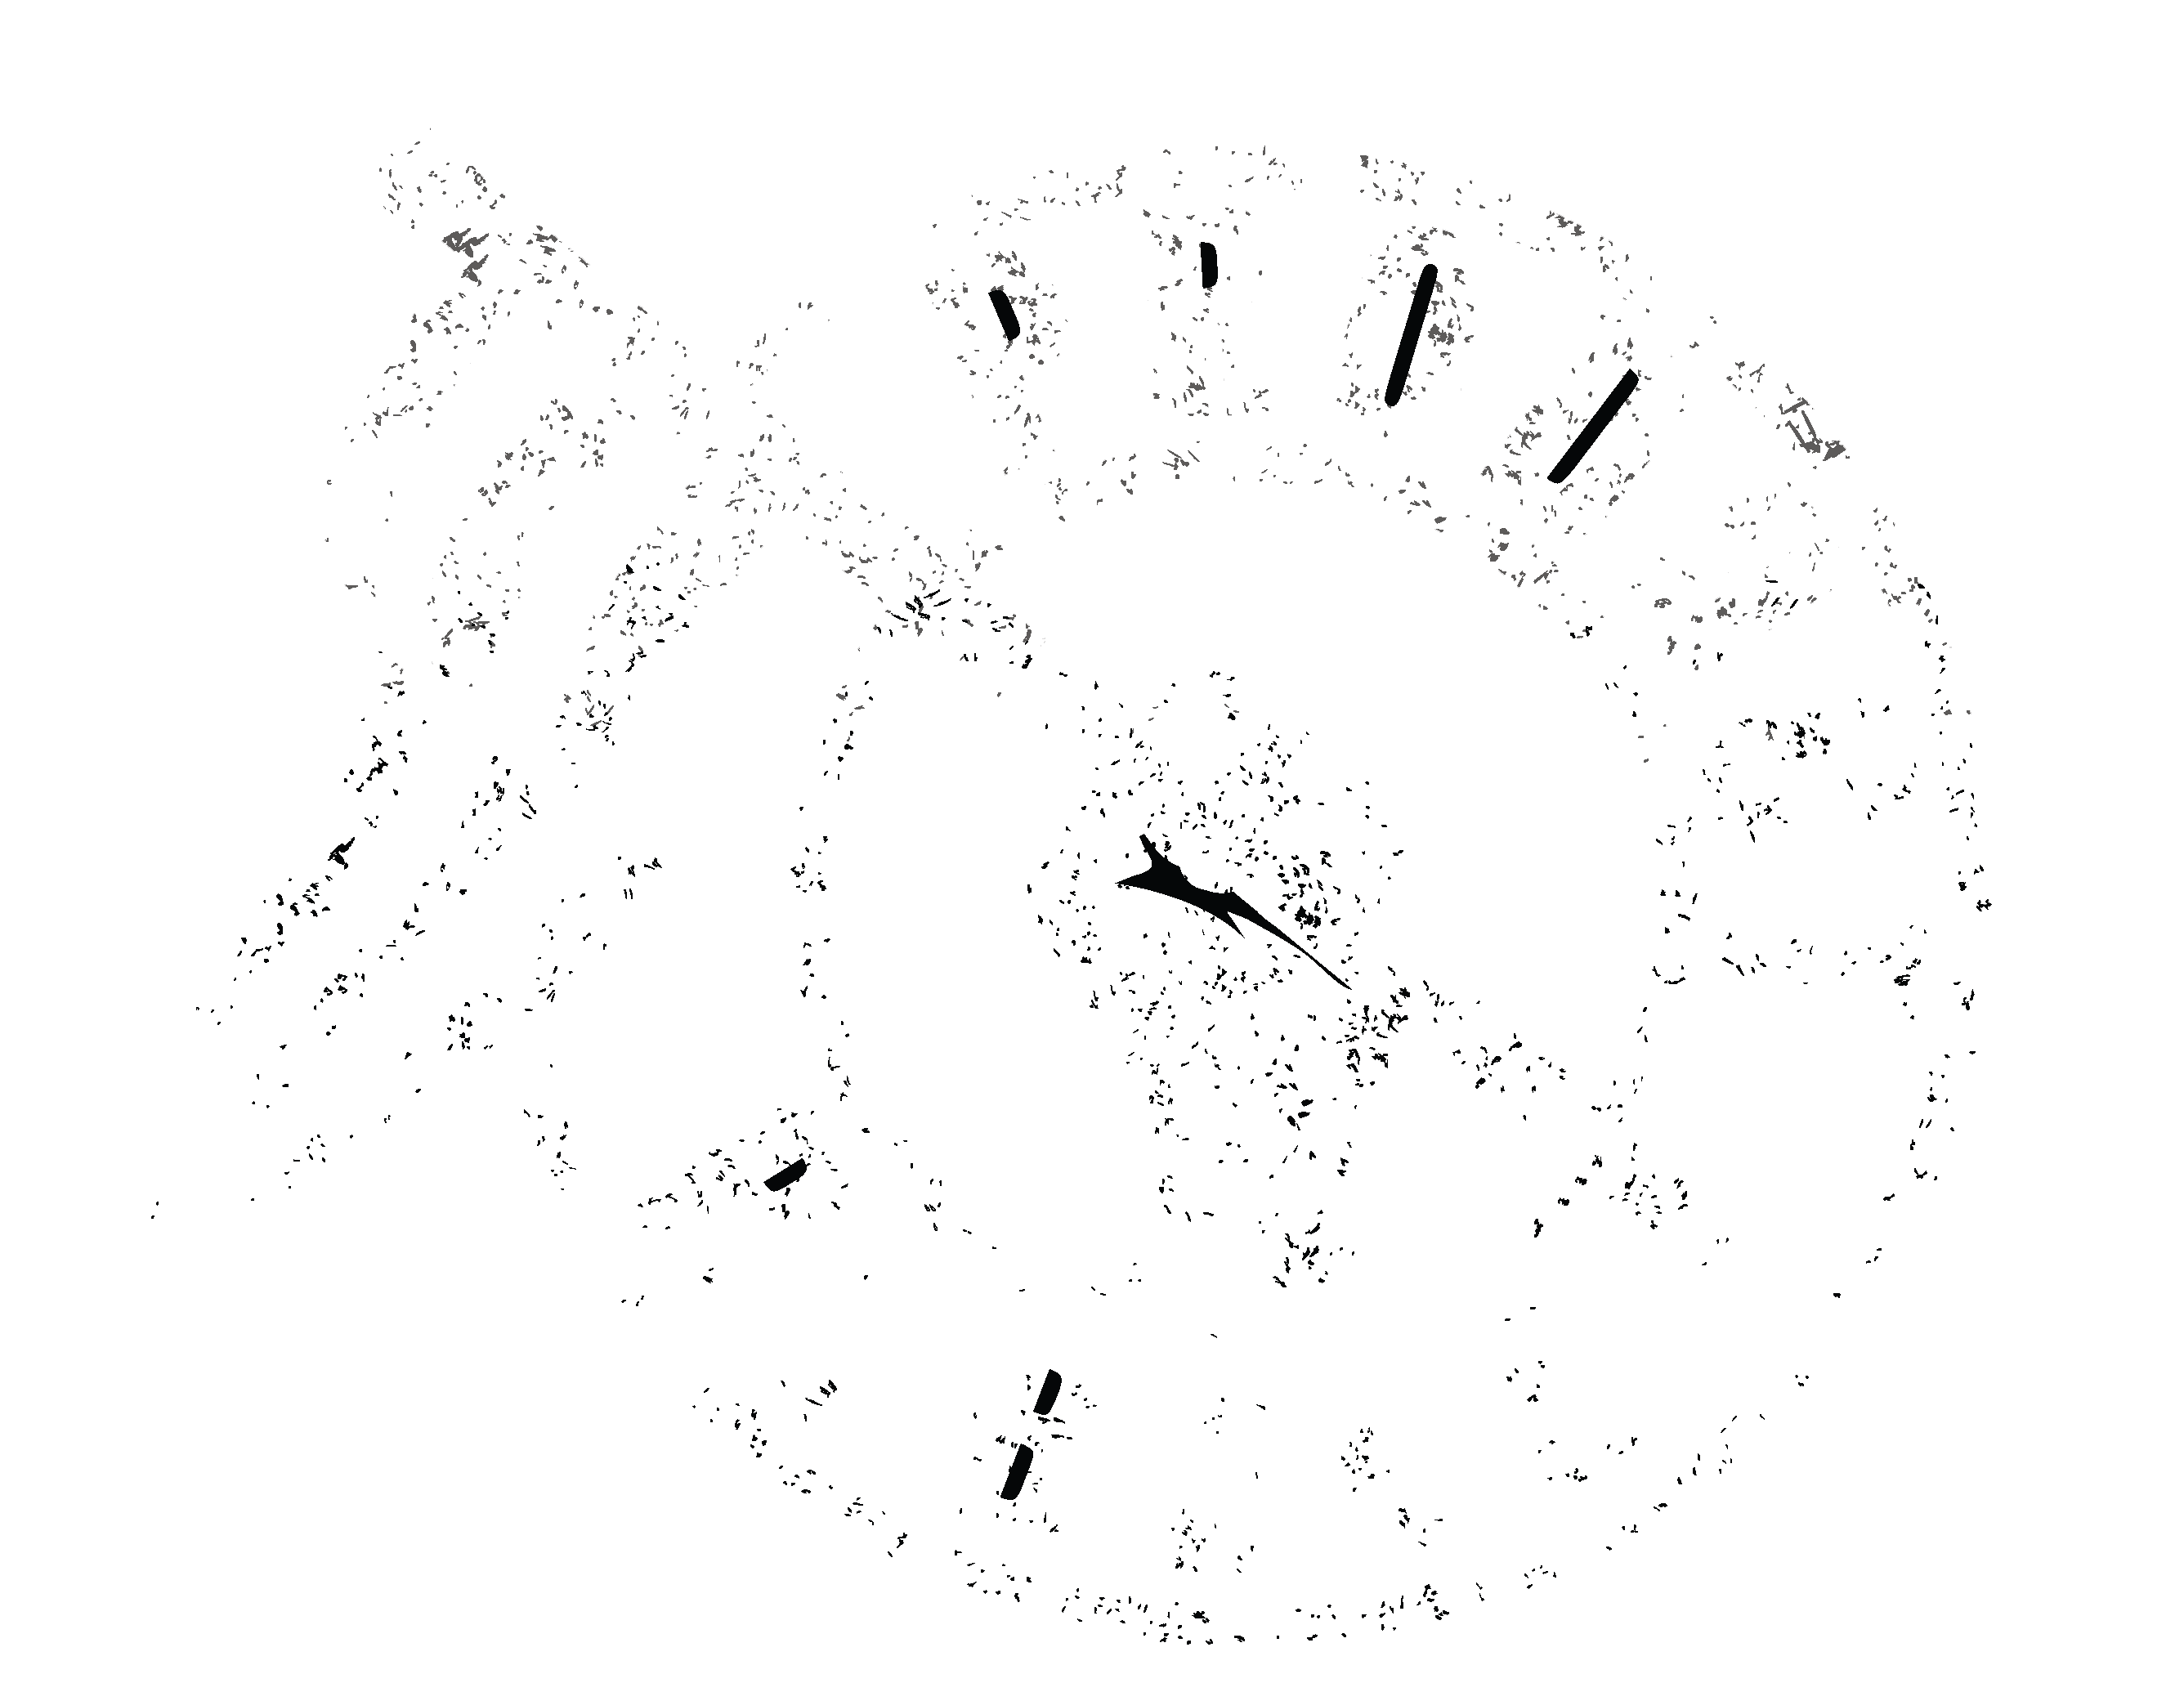 Product Rebels